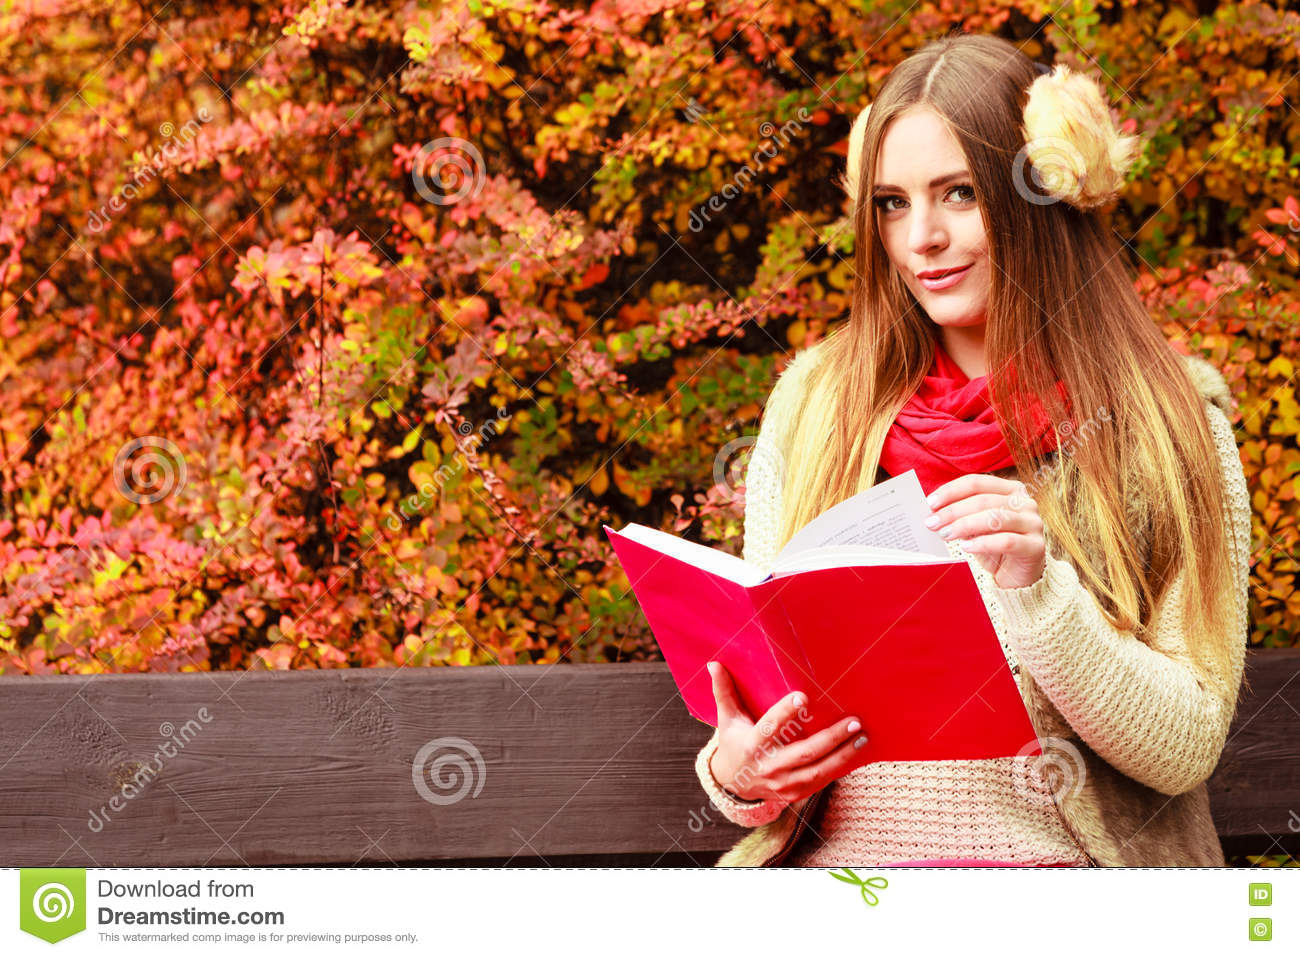 Woman Relaxing In Autumnal Park Reading Book Royalty Free Stock Image 76489564